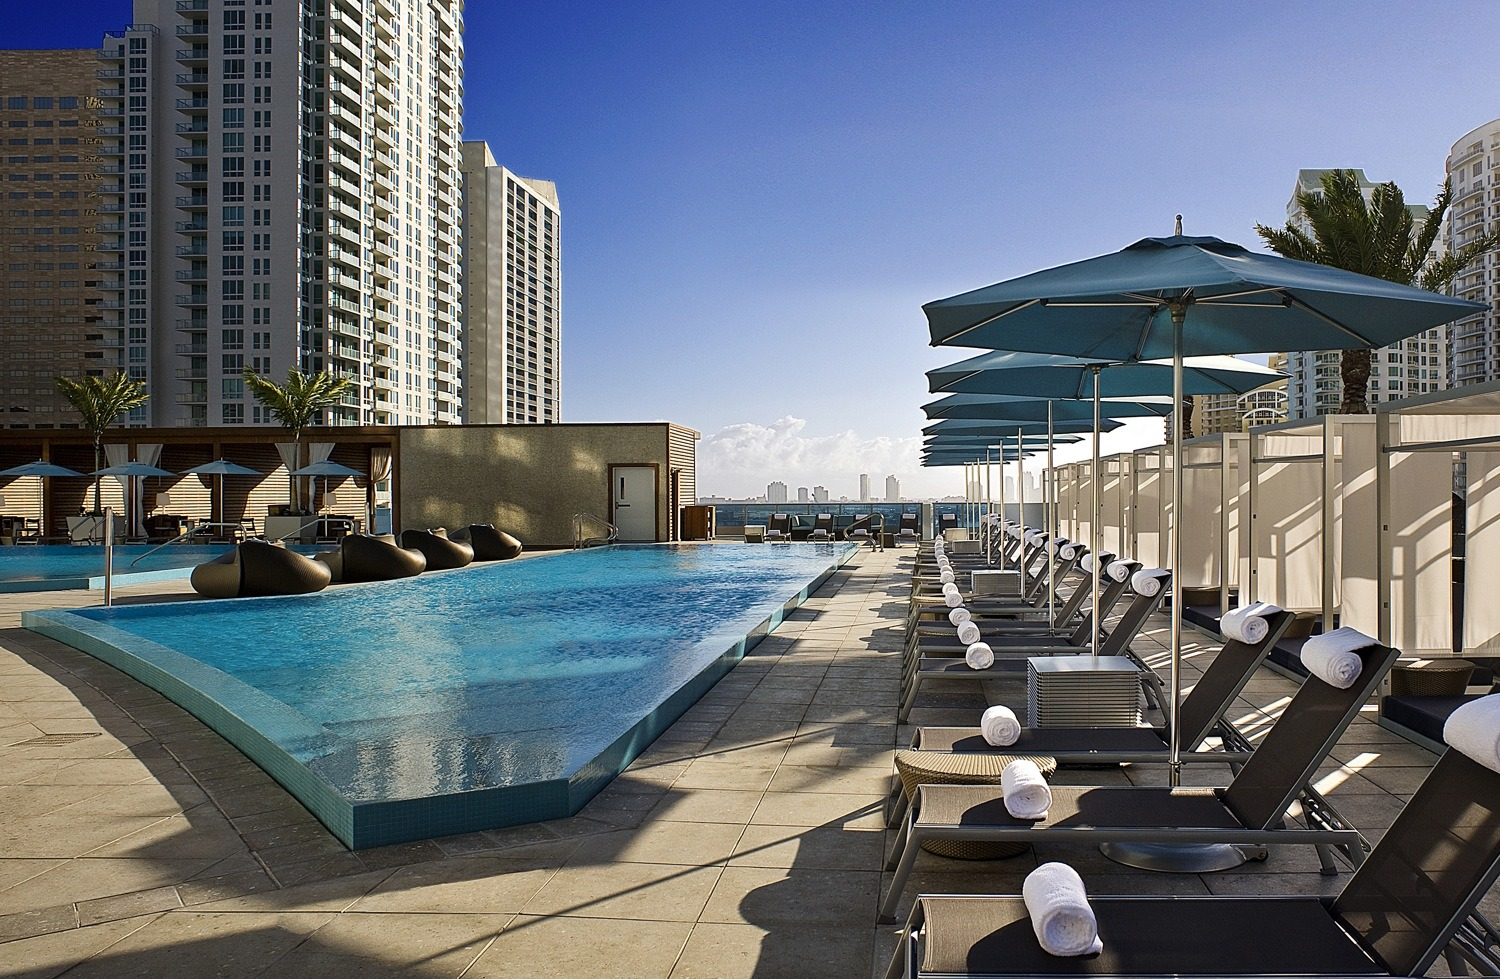 Epic Hotel Hotels And Accommodation Miami